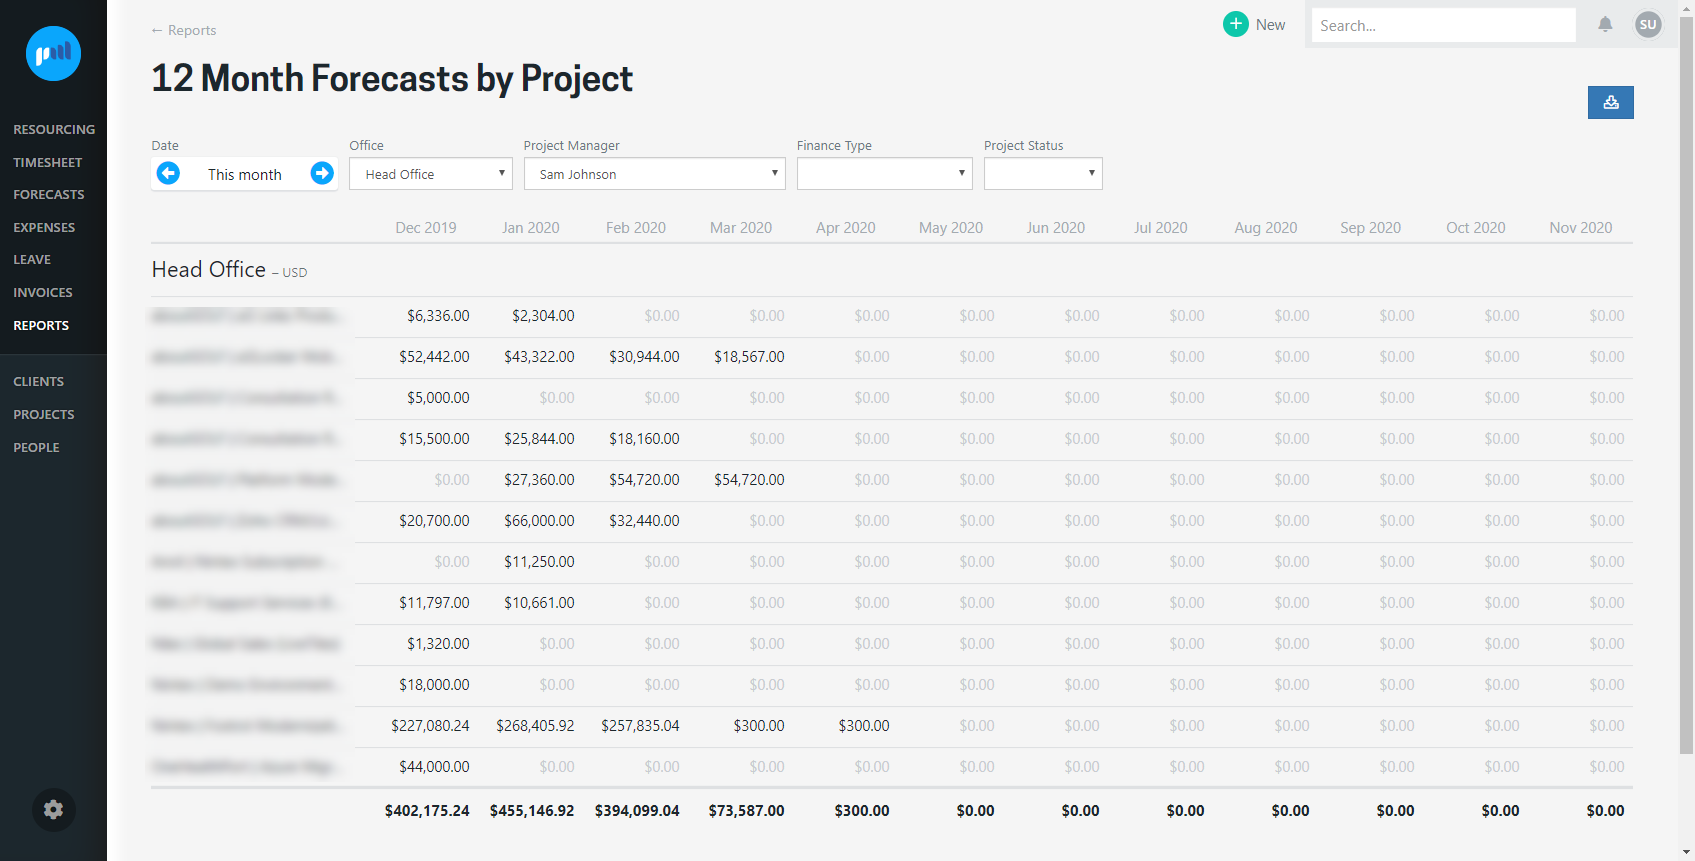 12 month forecast reports by project and company